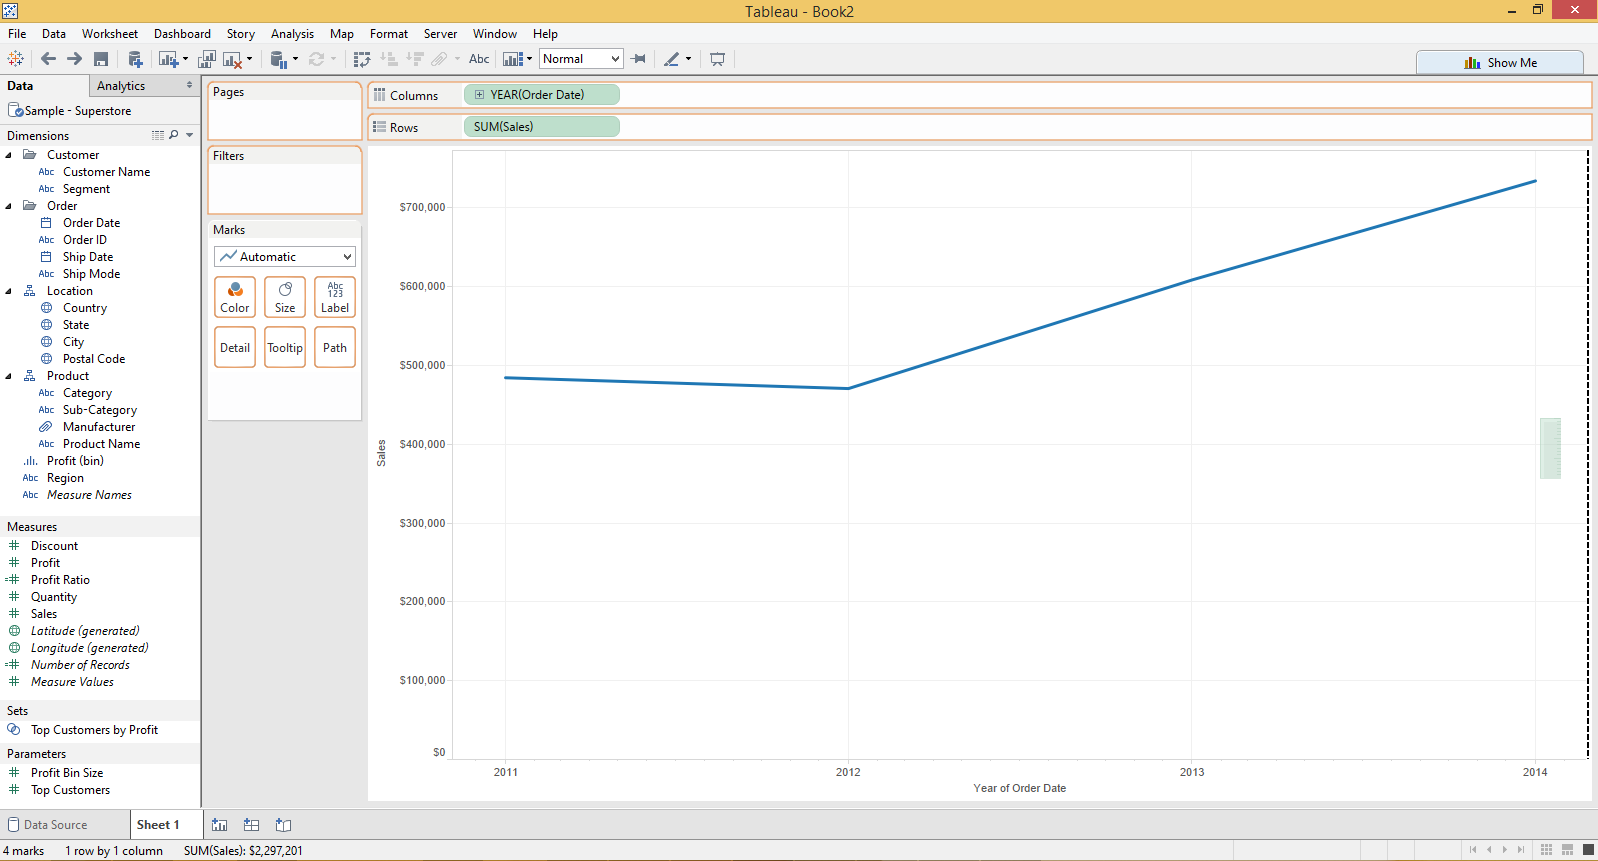 Tableau Dual-Axis Combo Dashed Axis